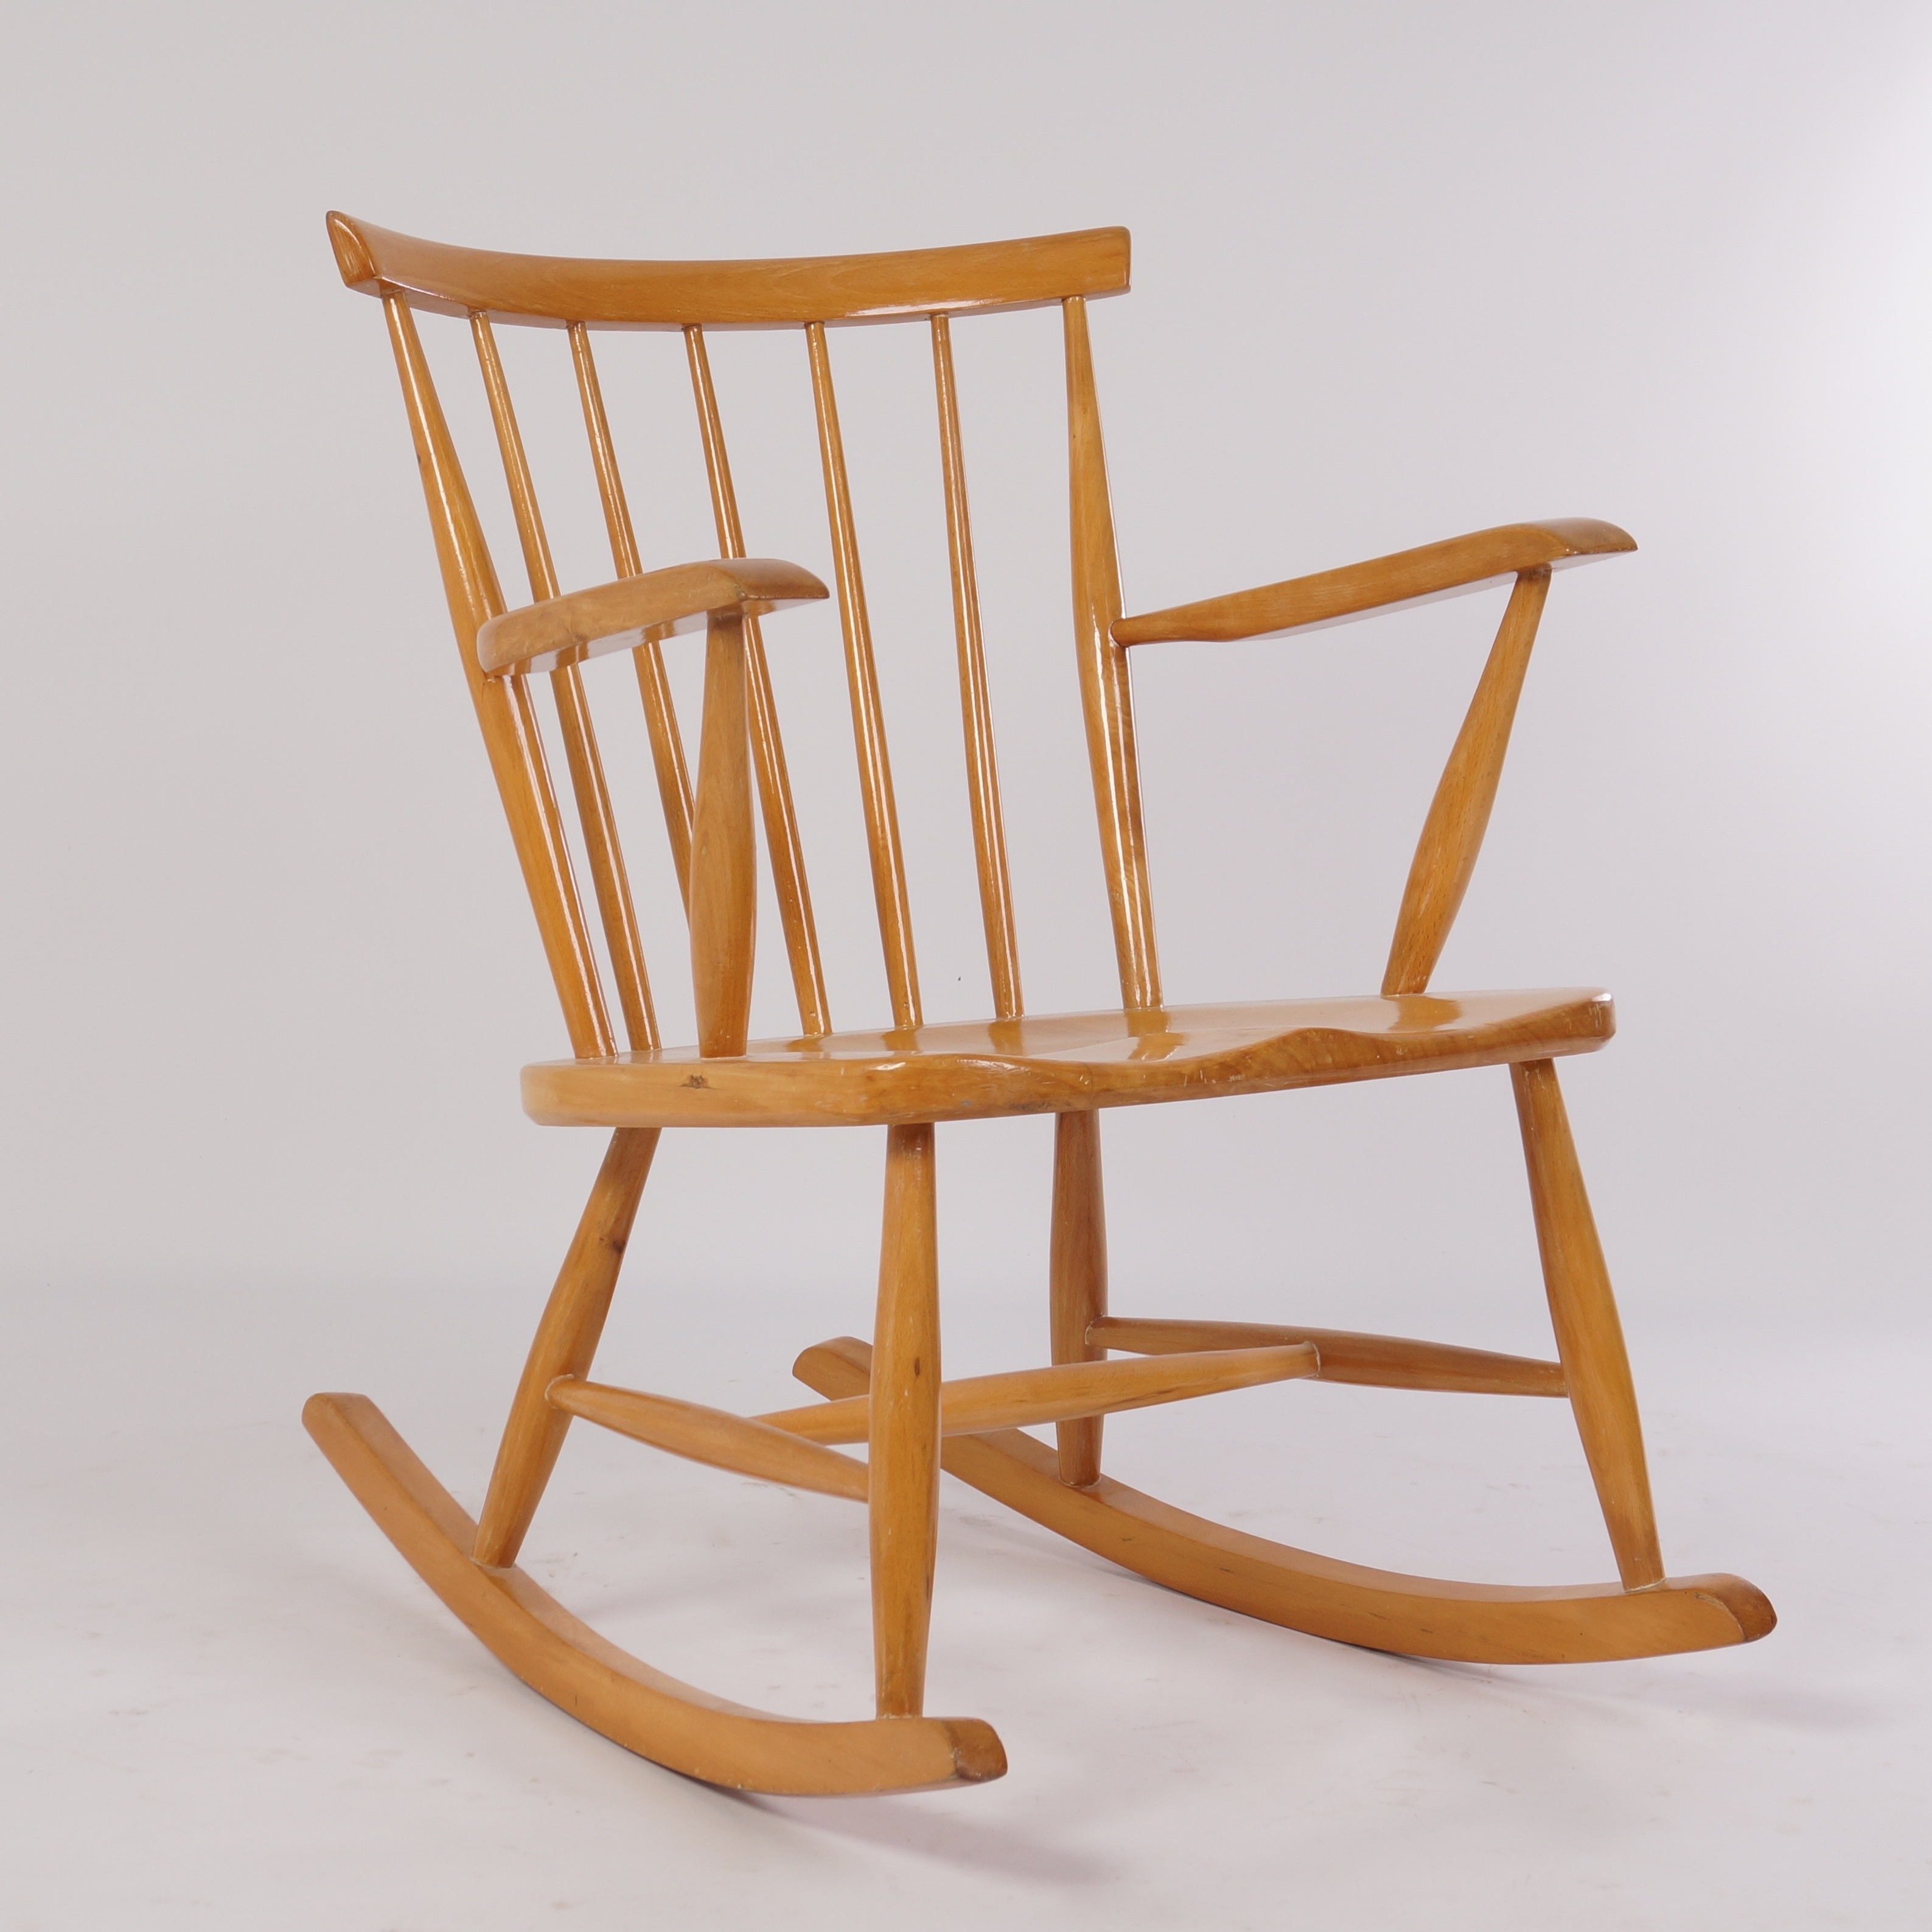 Vintage Birch Wood Rocking Chair From The 60S (View 17 of 20)